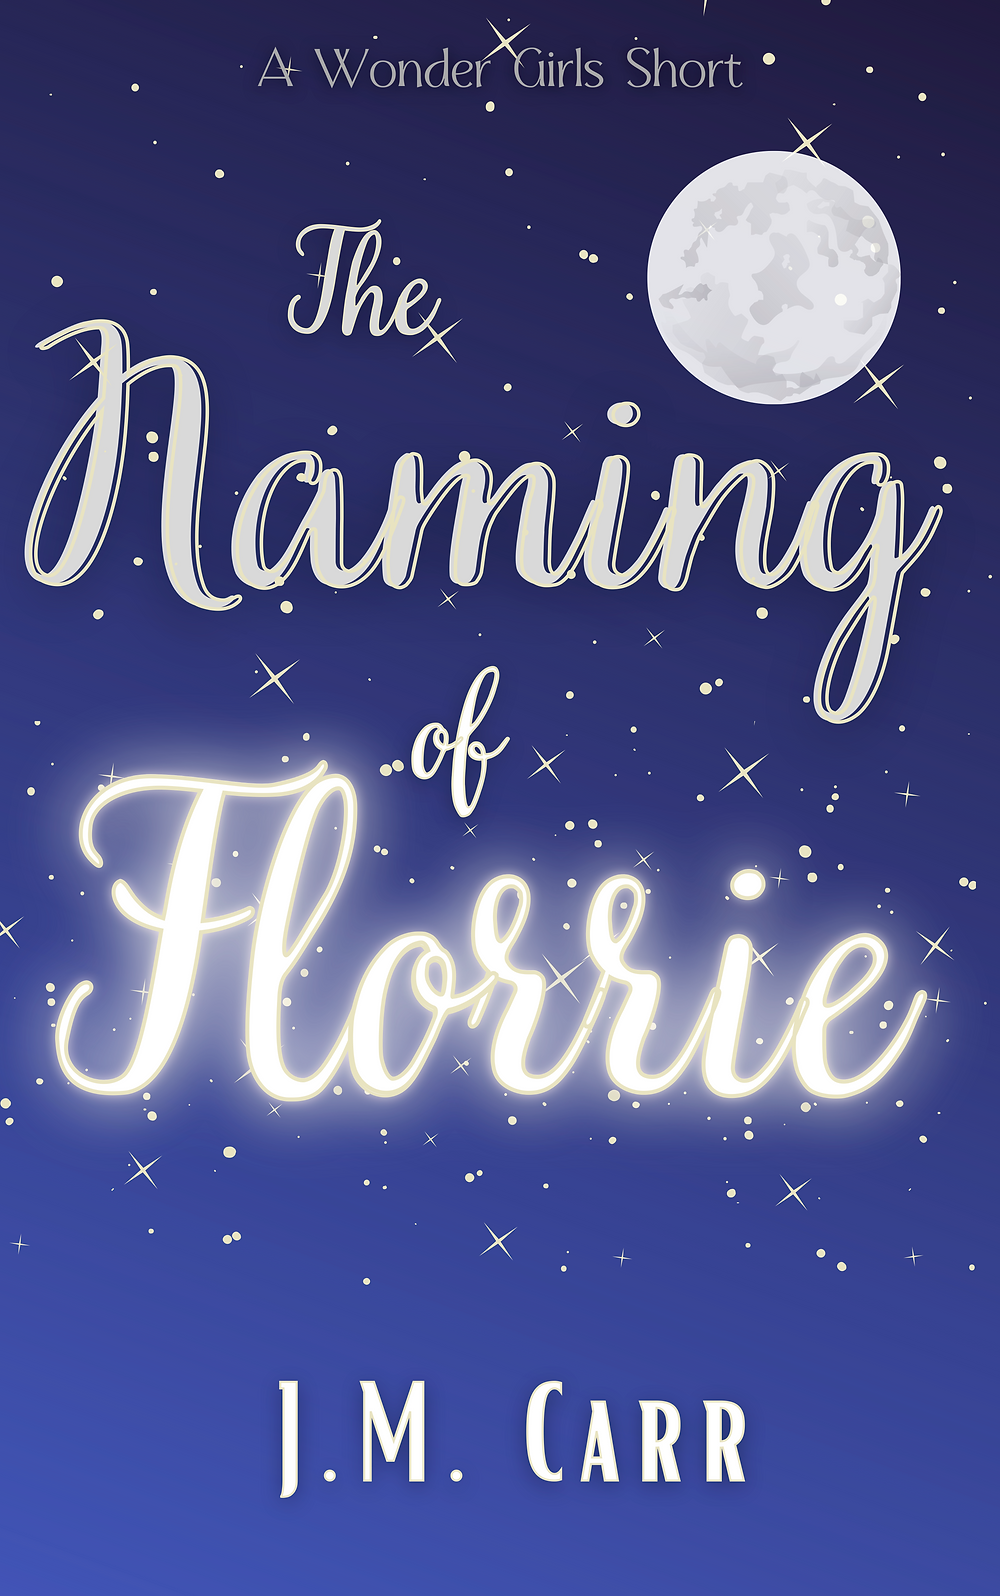 The cover for a Wonder Girls prequel story 'The Naming of Florrie' The cover image is a night sky with a full moon.